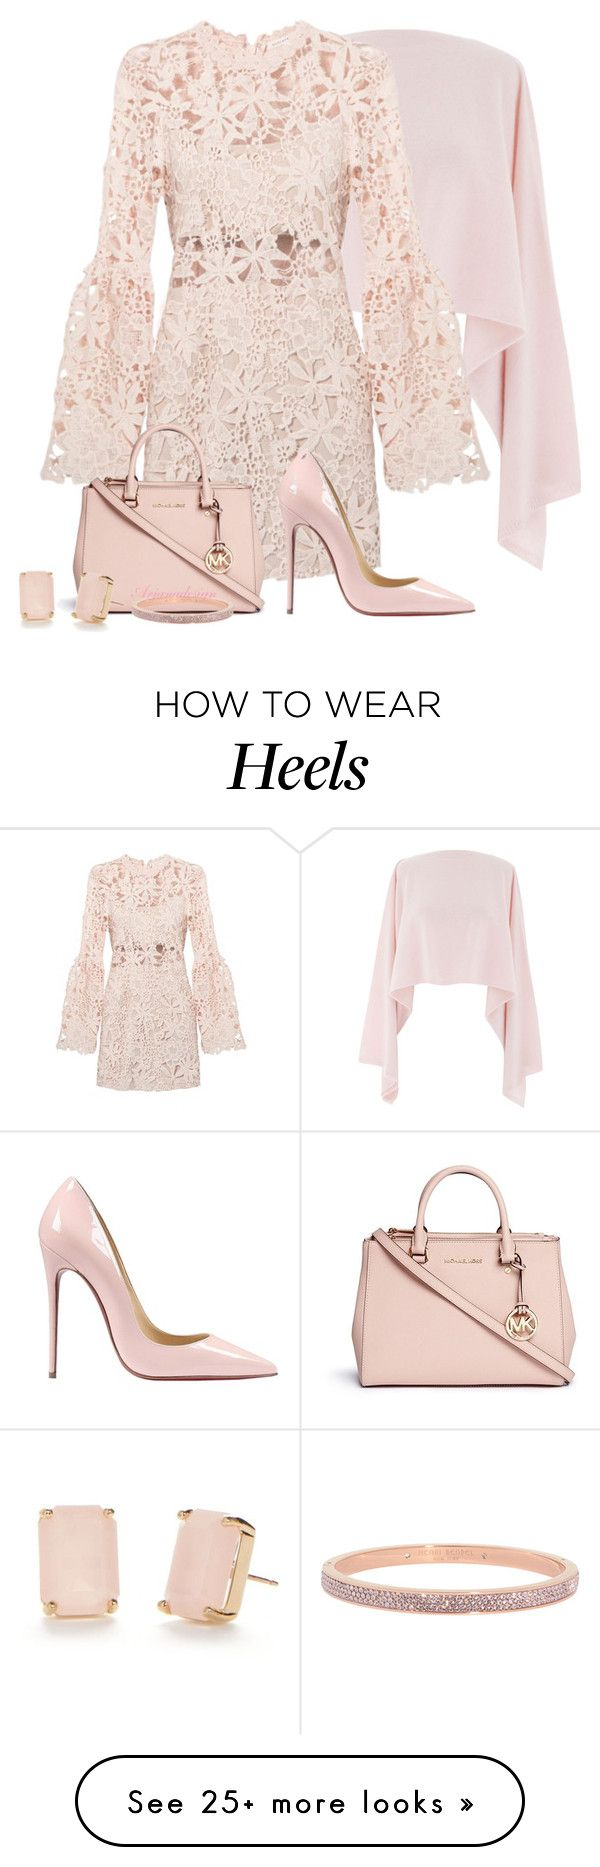 """LACE DRESS"" by arjanadesign on Polyvore featuring Henri Bendel, Christian Louboutin, Michael Kors, Kate Spade, women's clothing, women's fashion, women, female, woman and misses"